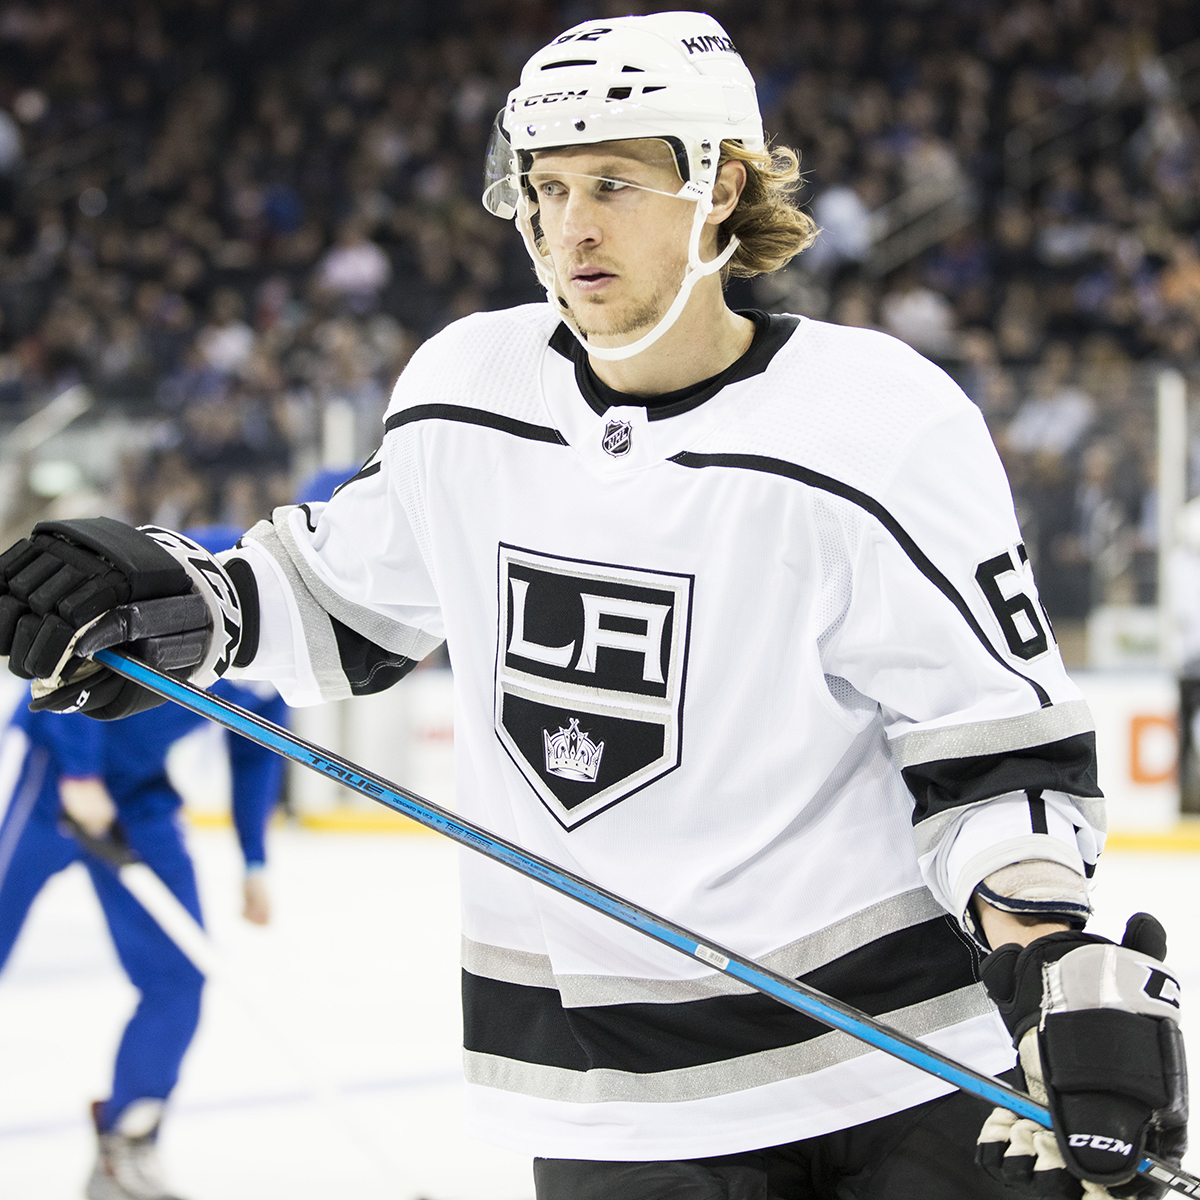 Carl Hagelin, Washington Capitals